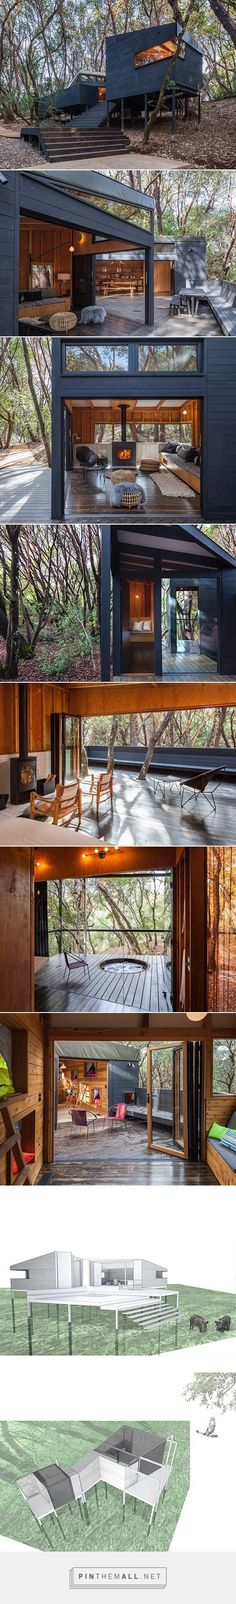 Forest House - envelopeA+D - created via https://pinthemall.net?utm_content=buffercf0d3&utm_medium=social&utm_source=pinterest.com&utm_campaign=buffer